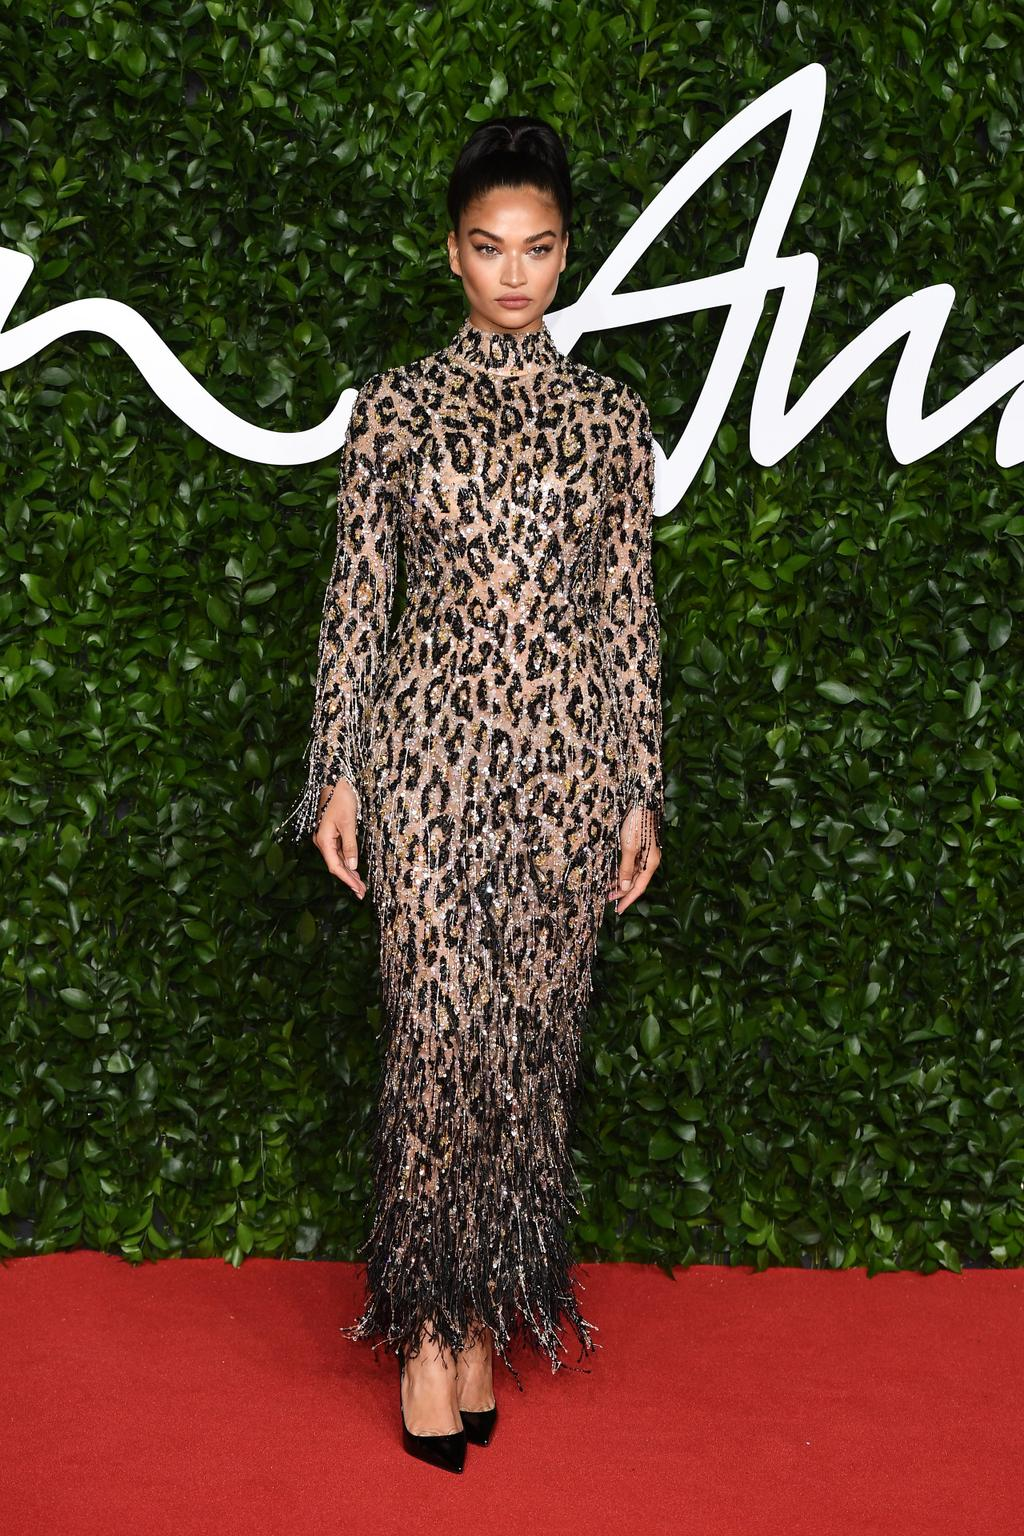 shanina-shaik-in-ralph-russo-2019-british-fashion-council-awards